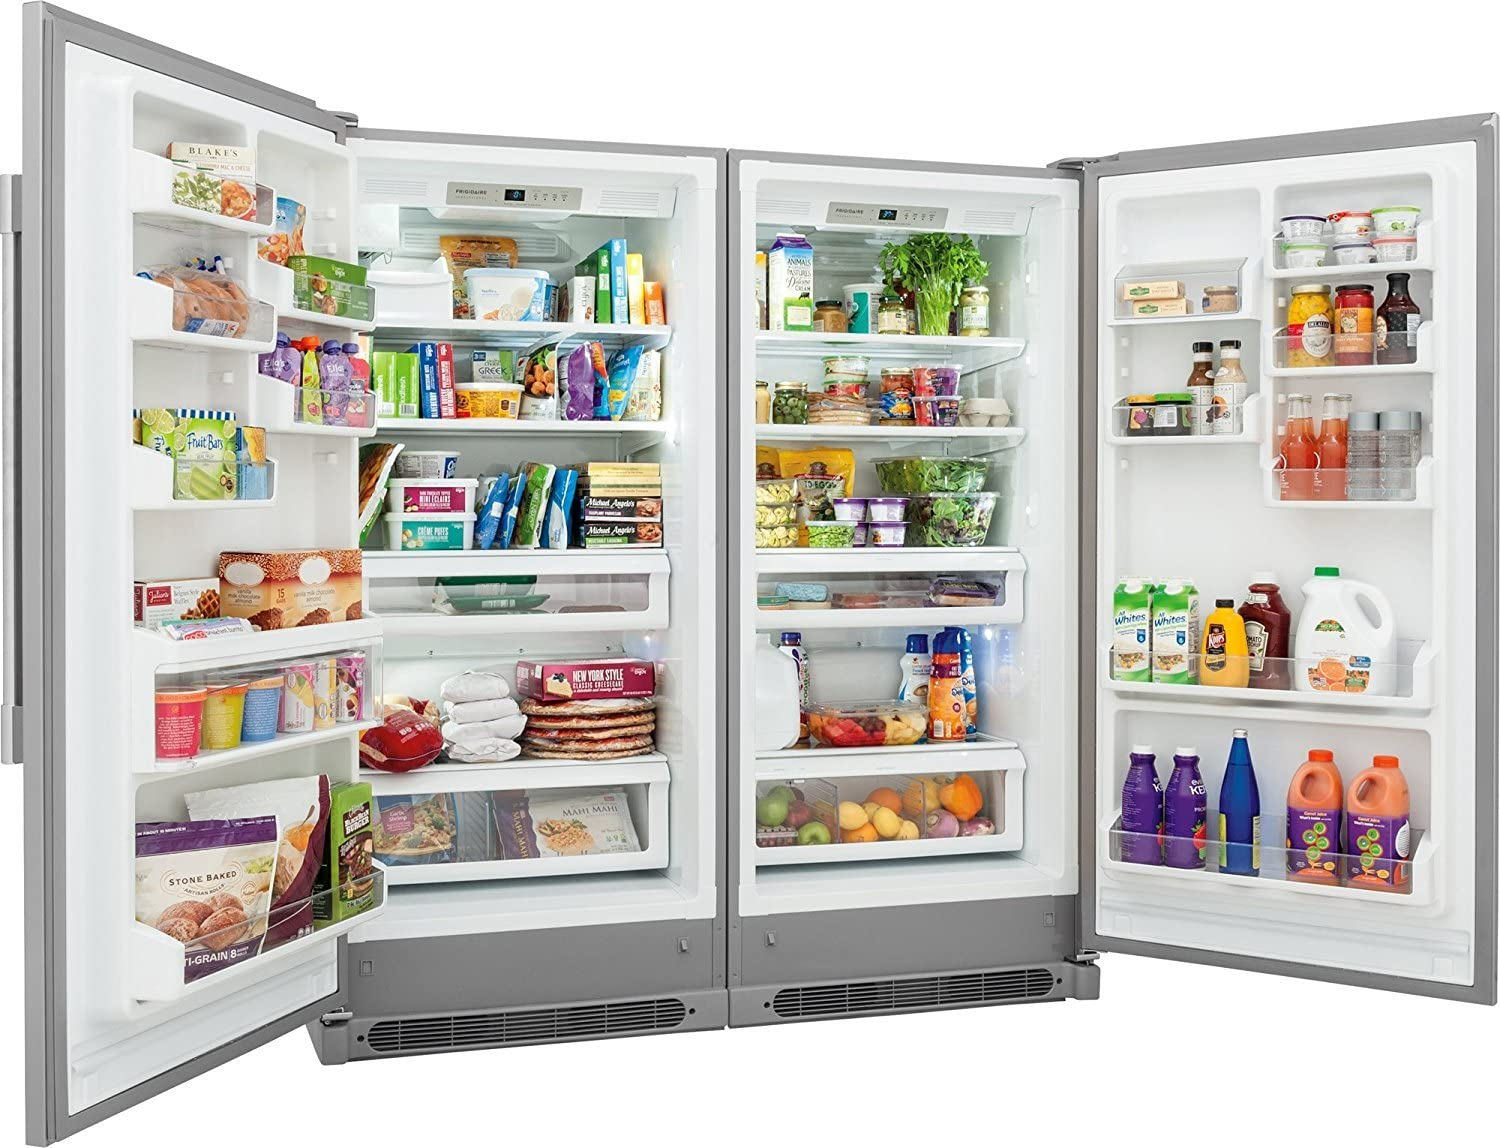 All Freezer Combo with Easy Care Stainless FPFU19F8RF/_FPRU19F8RF Frigidaire Professional Series Built-In All Refrigerator